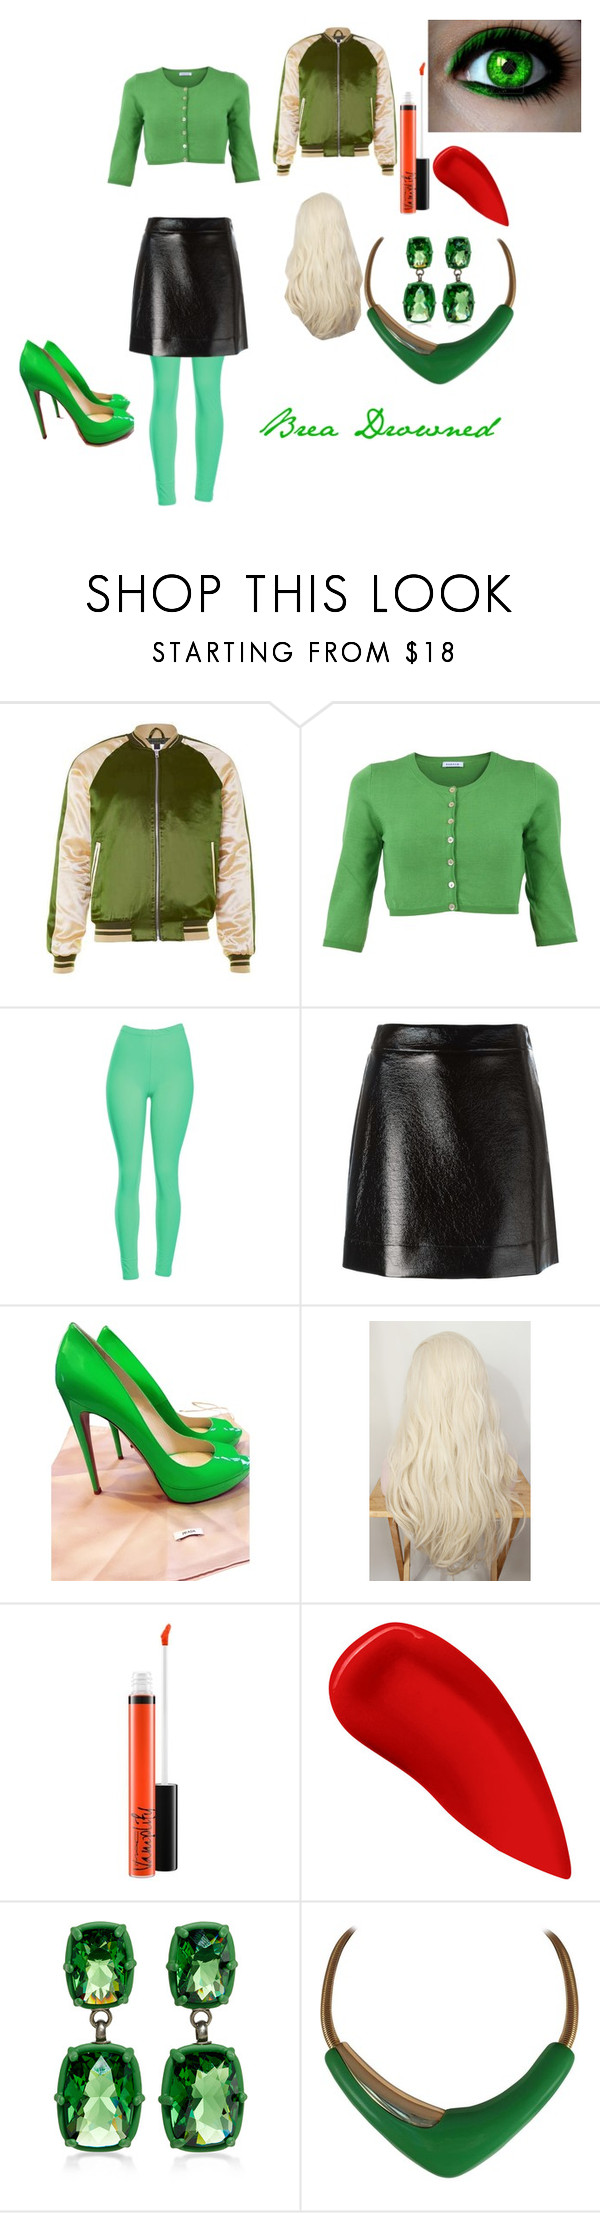 """""""Brea Drowned"""" by emma0502 on Polyvore featuring P.A.R.O.S.H., MICHAEL Michael Kors, Prada, MAC Cosmetics, Lipstick Queen and Monet"""